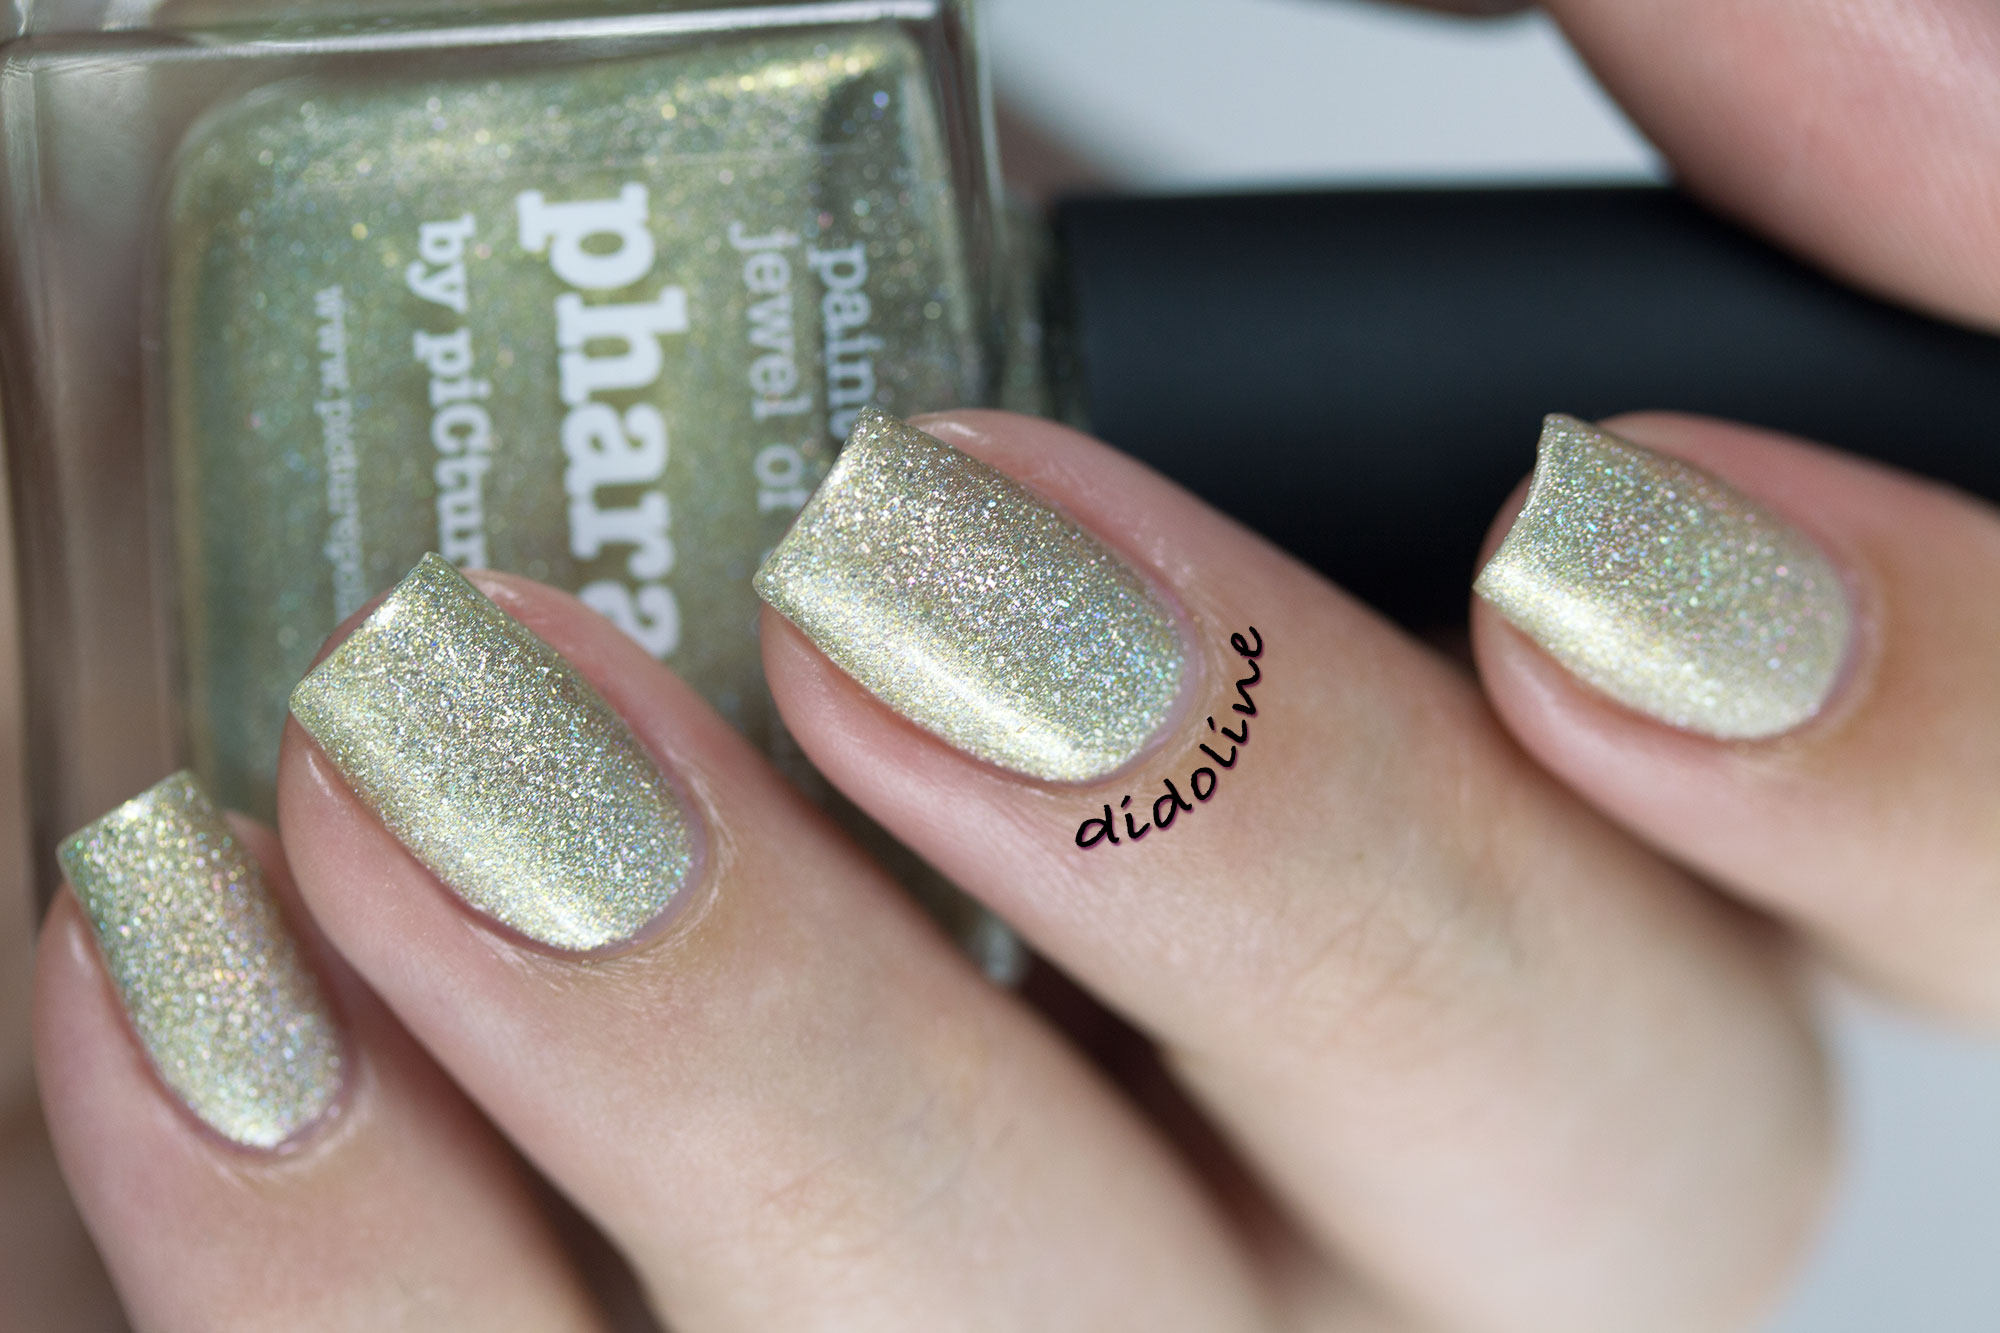 piCturepOlish-Pharaoh-3